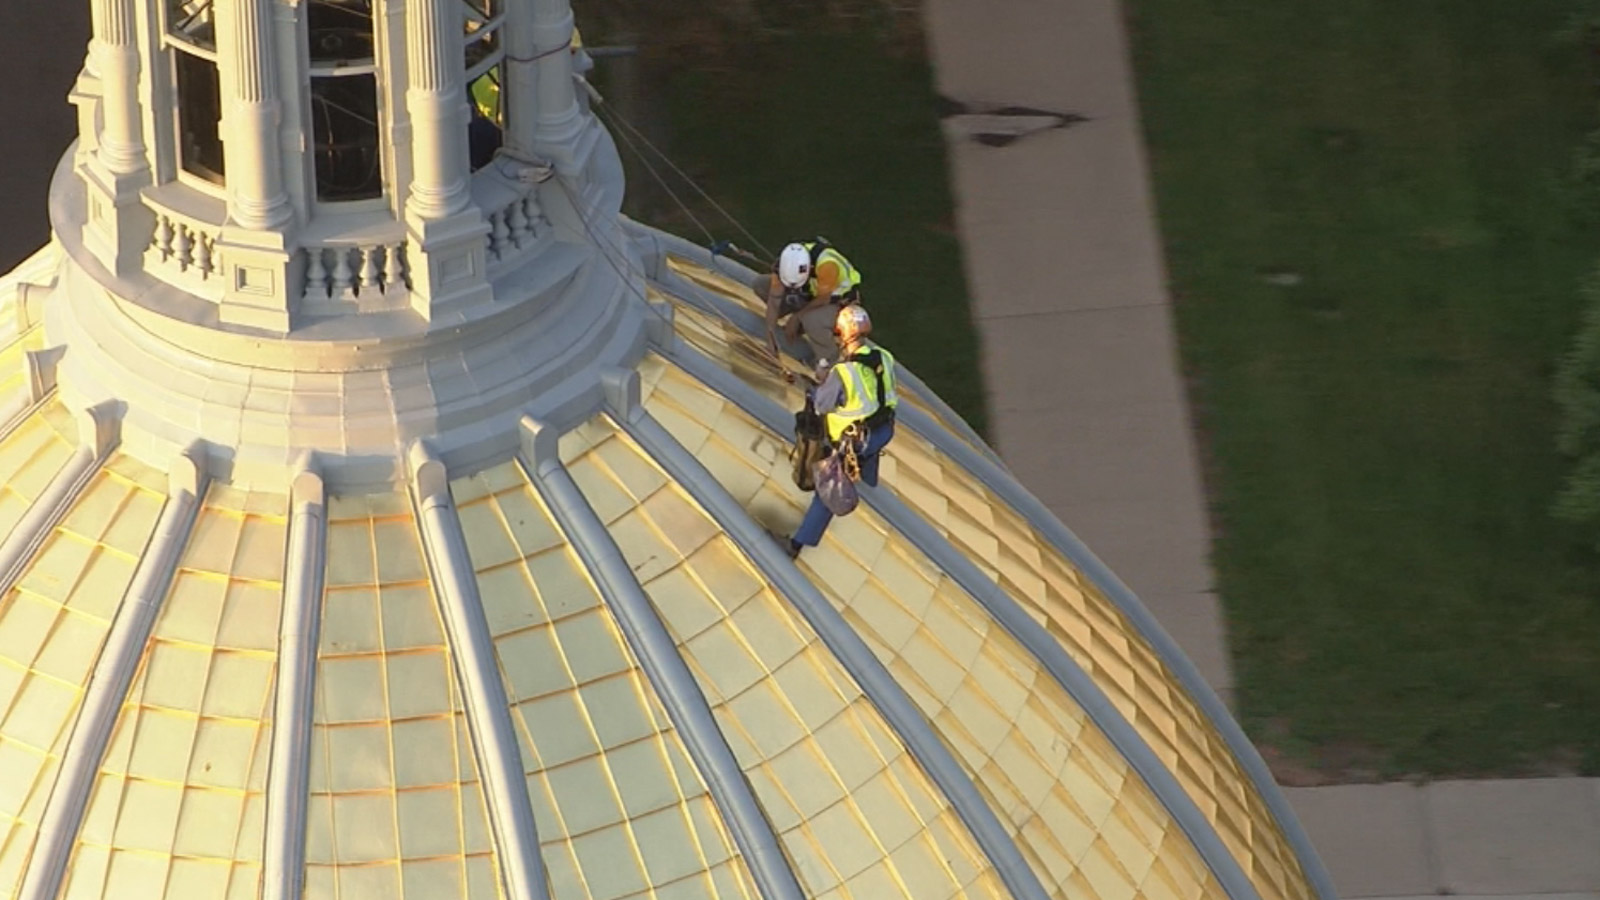 Copter4 flew over as workers replace gold leaf on the state Capitol dome (credit: CBS)